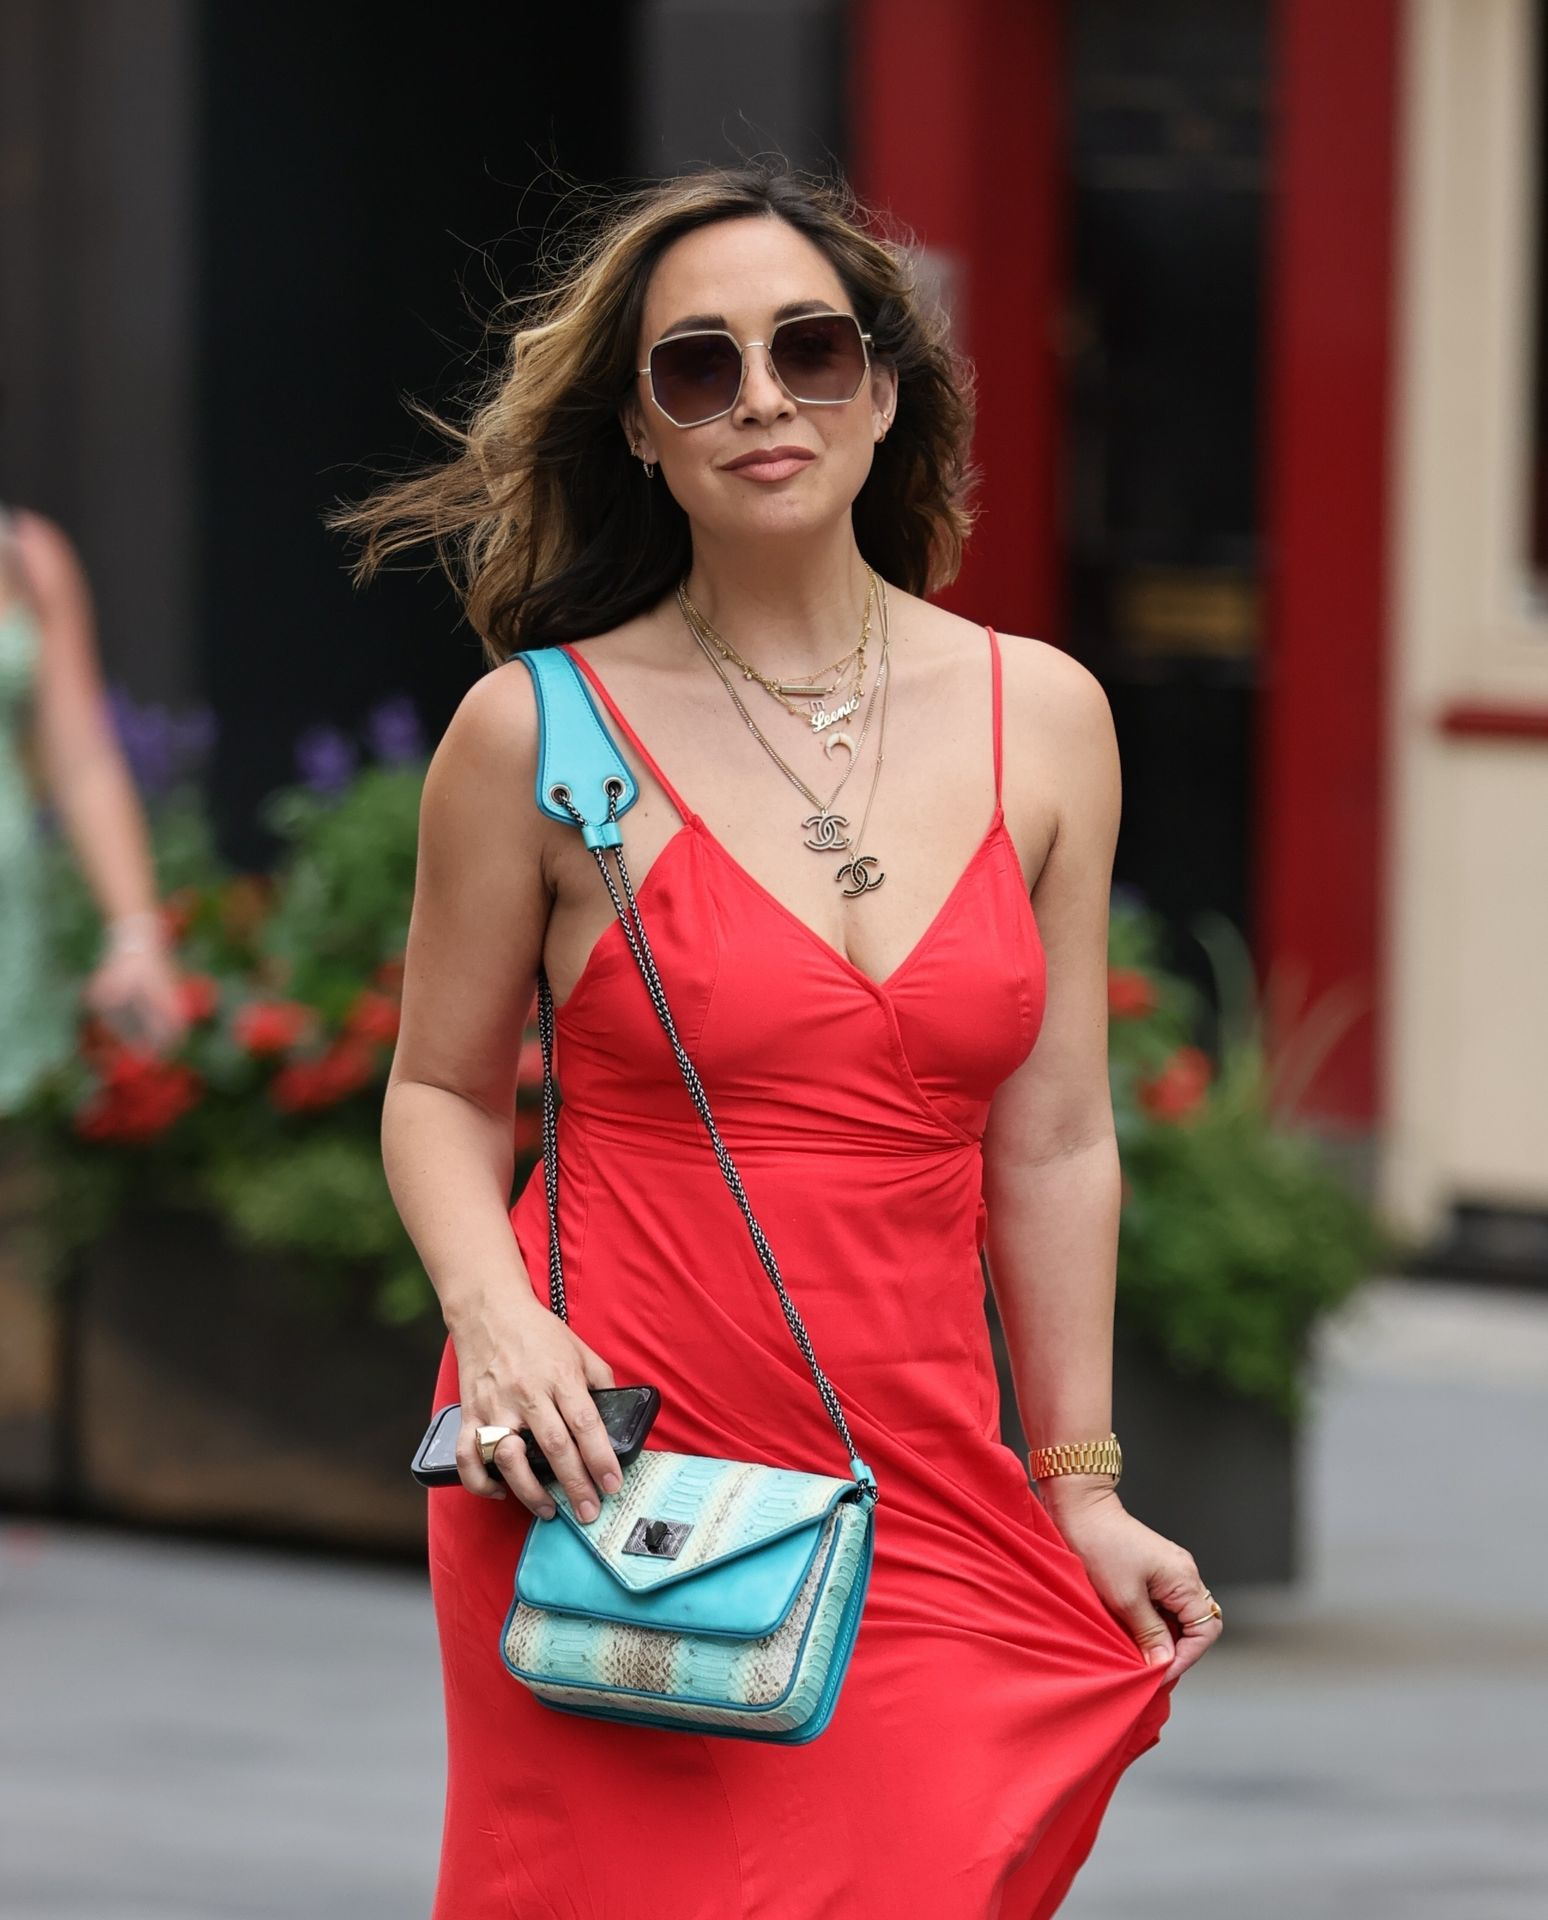 Myleene Klass Pokies, Looks Stunning in a Red Dress